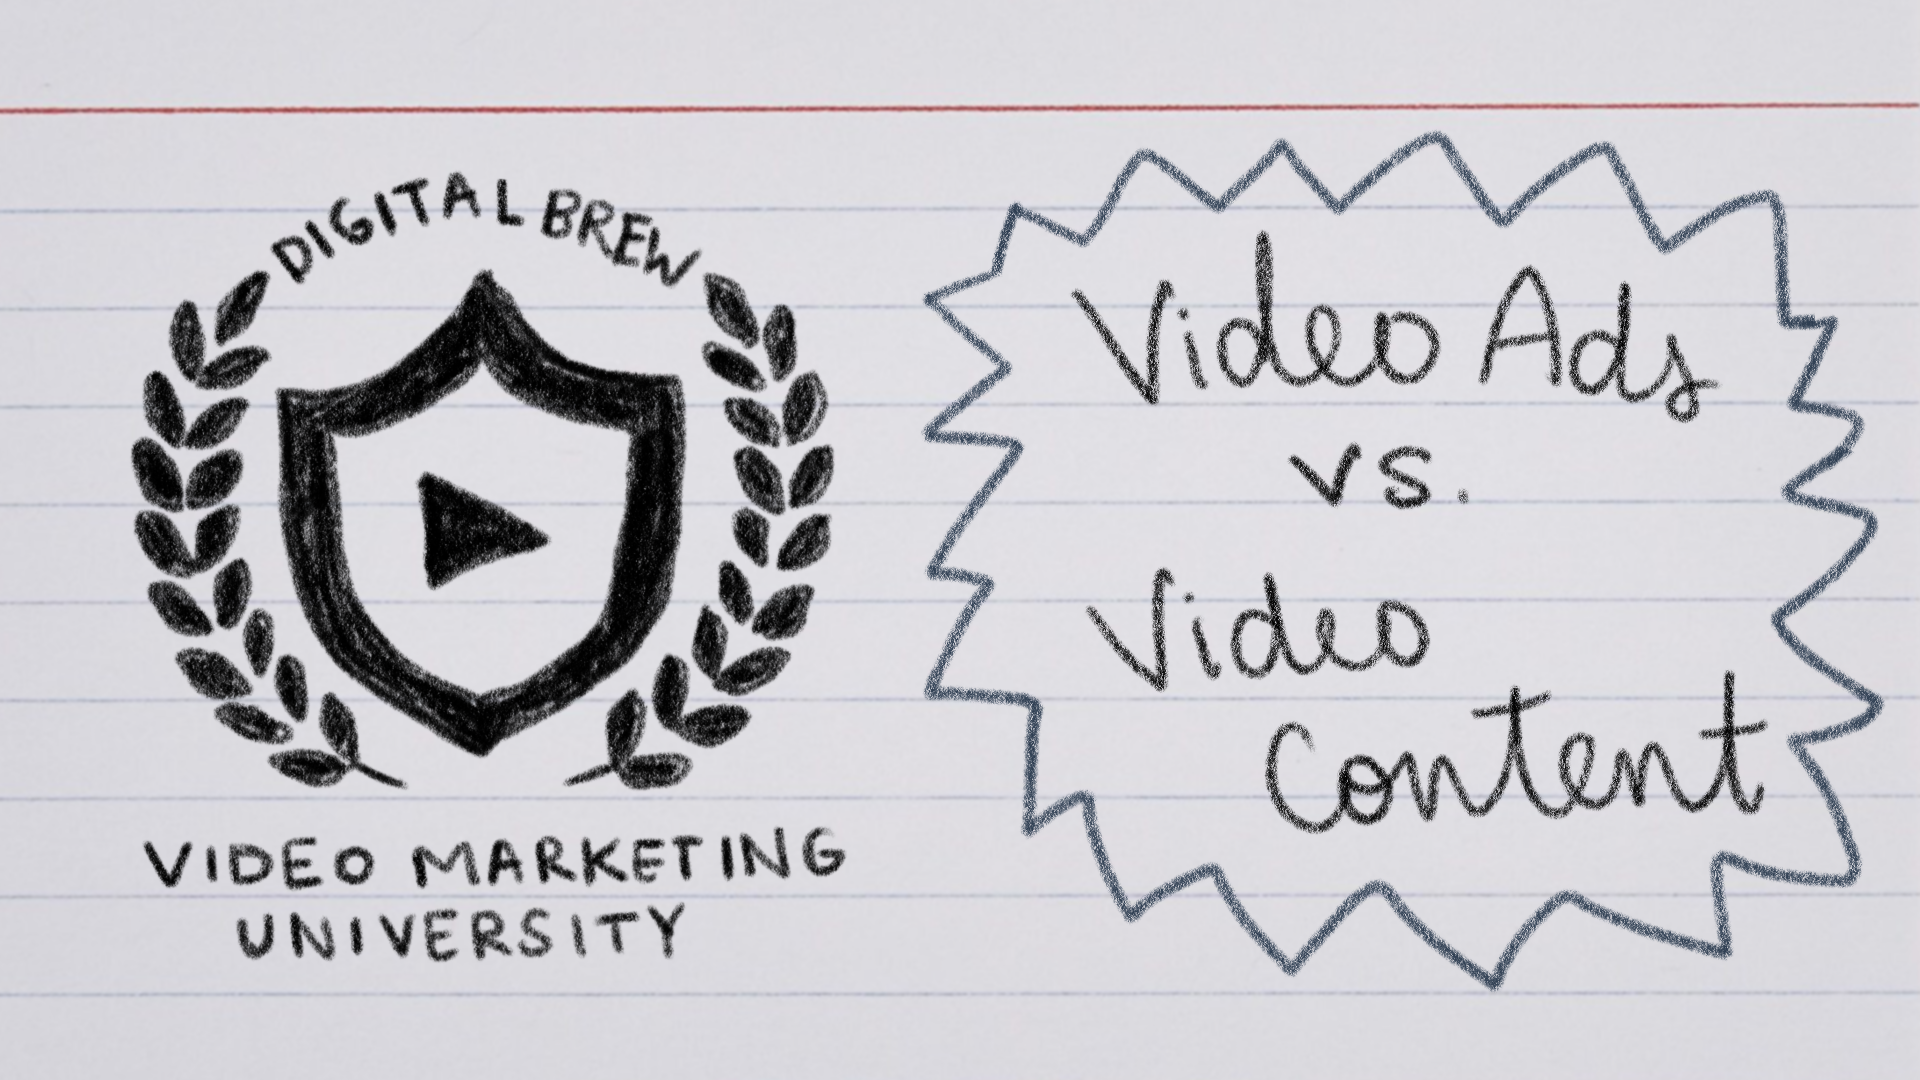 Video Advertising vs. Video Content: Which Is Right For Me?